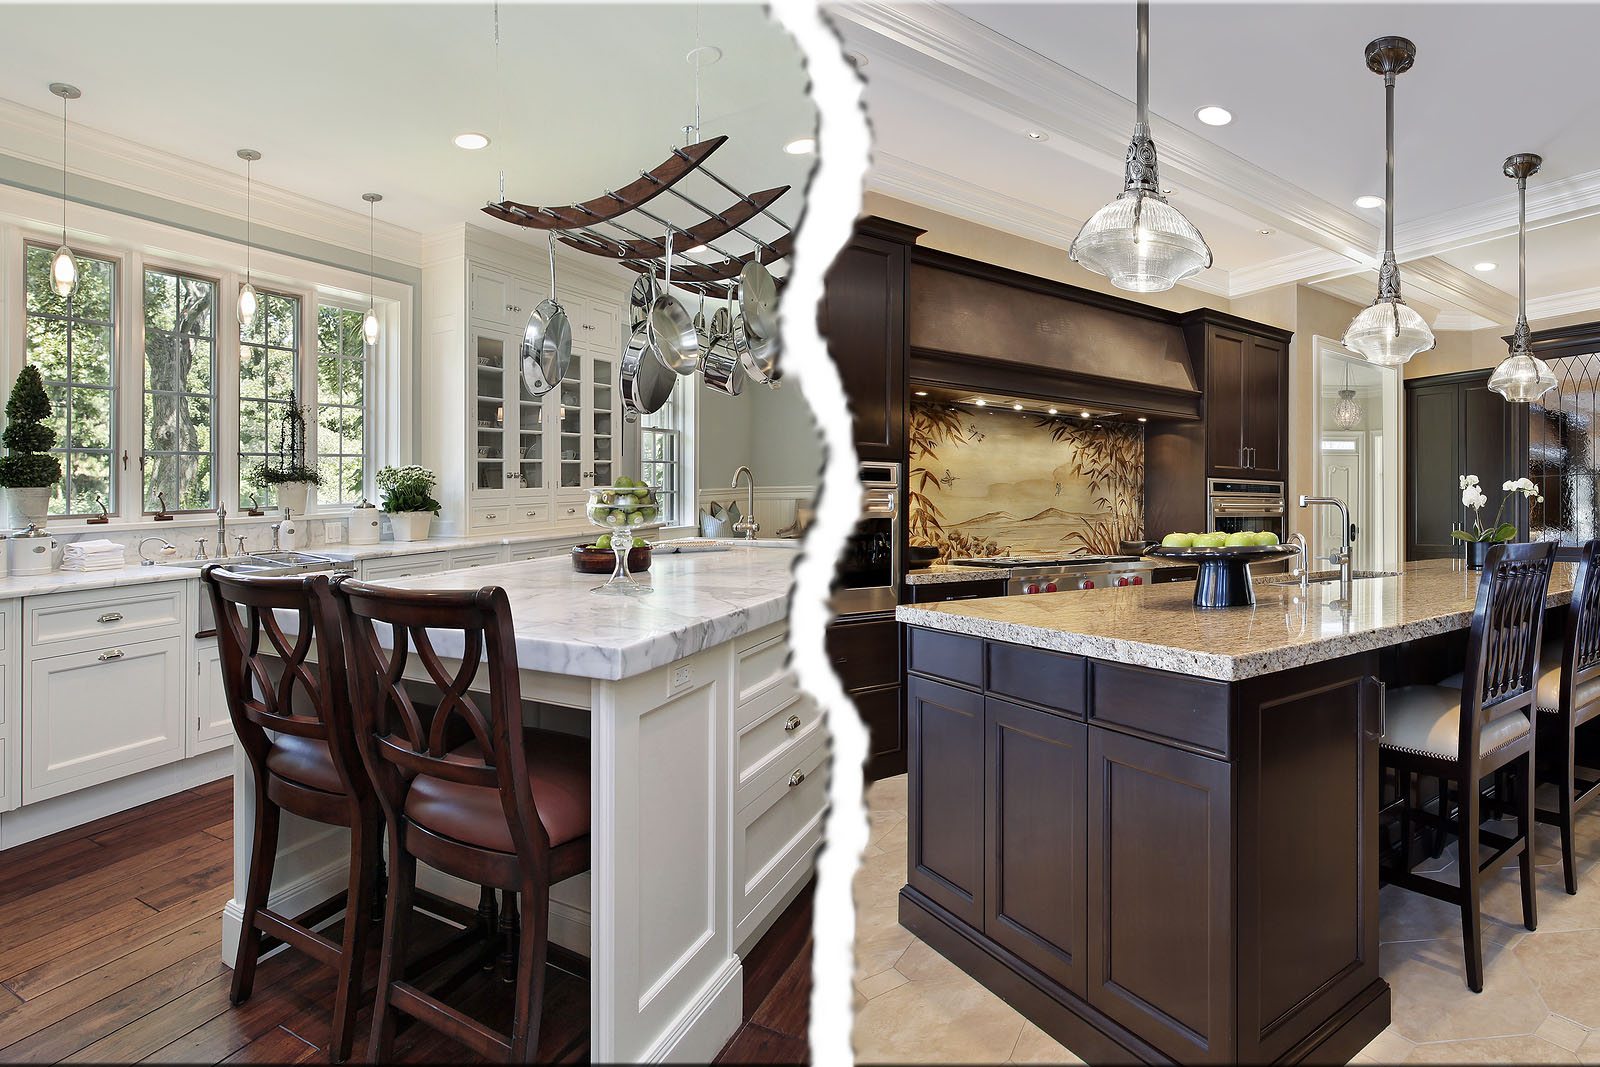 Backsplash For White Kitchen Cabinets Fresh Coat Of Paint Light Vs Dark Kitchens